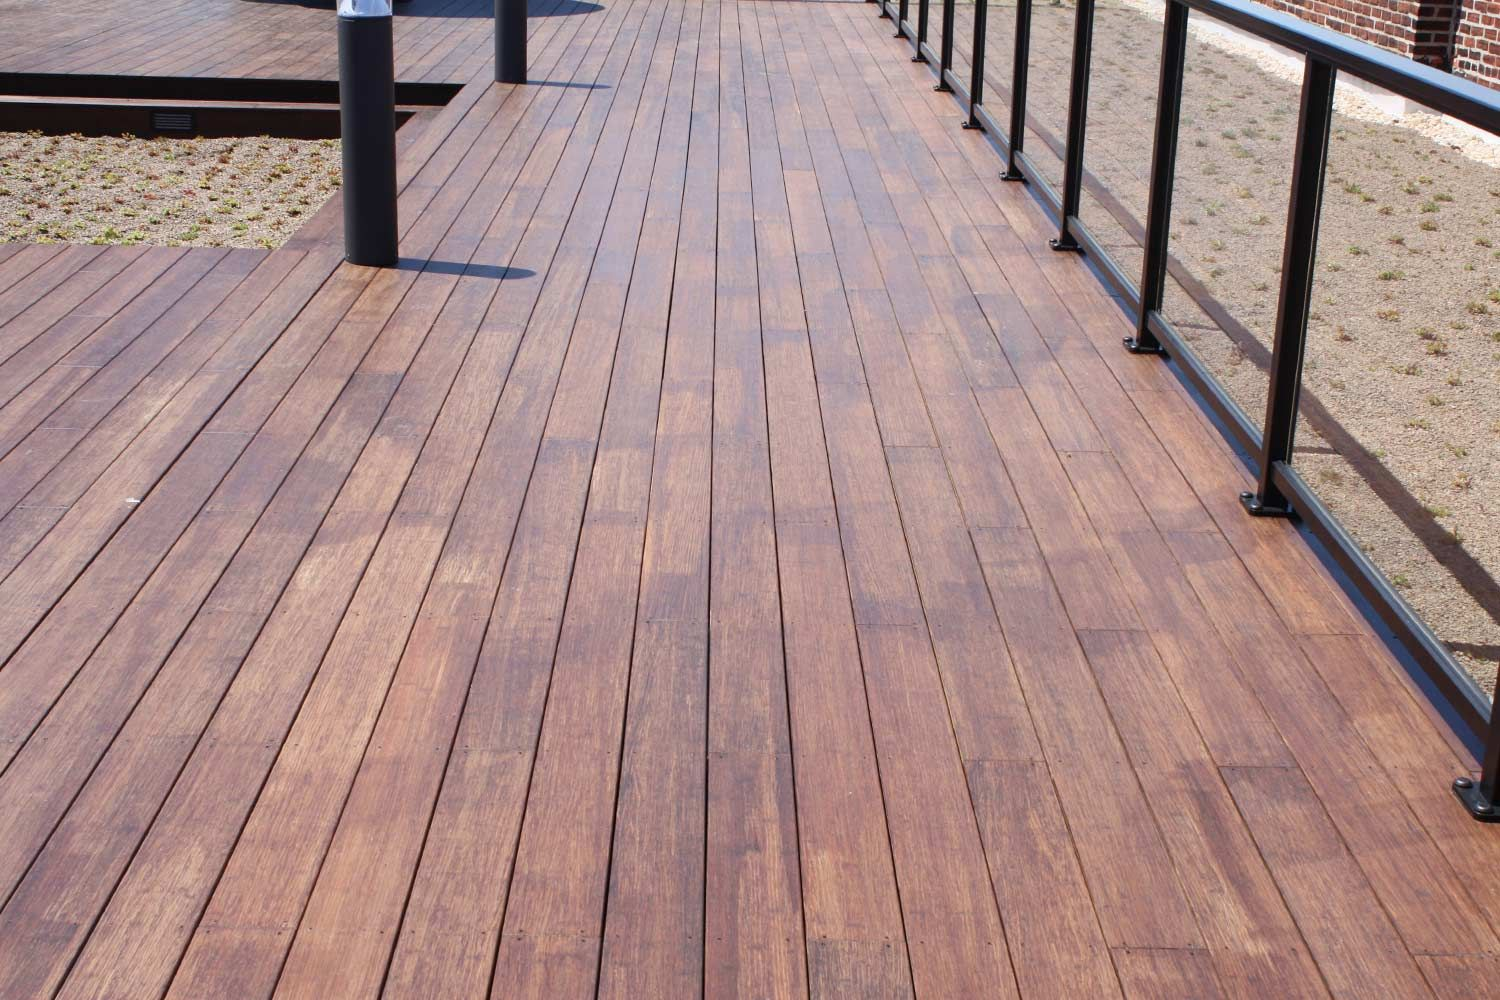 Pin By Best Home Decor On Home Decor In 2020 Bamboo Decking Deck Flooring Deck